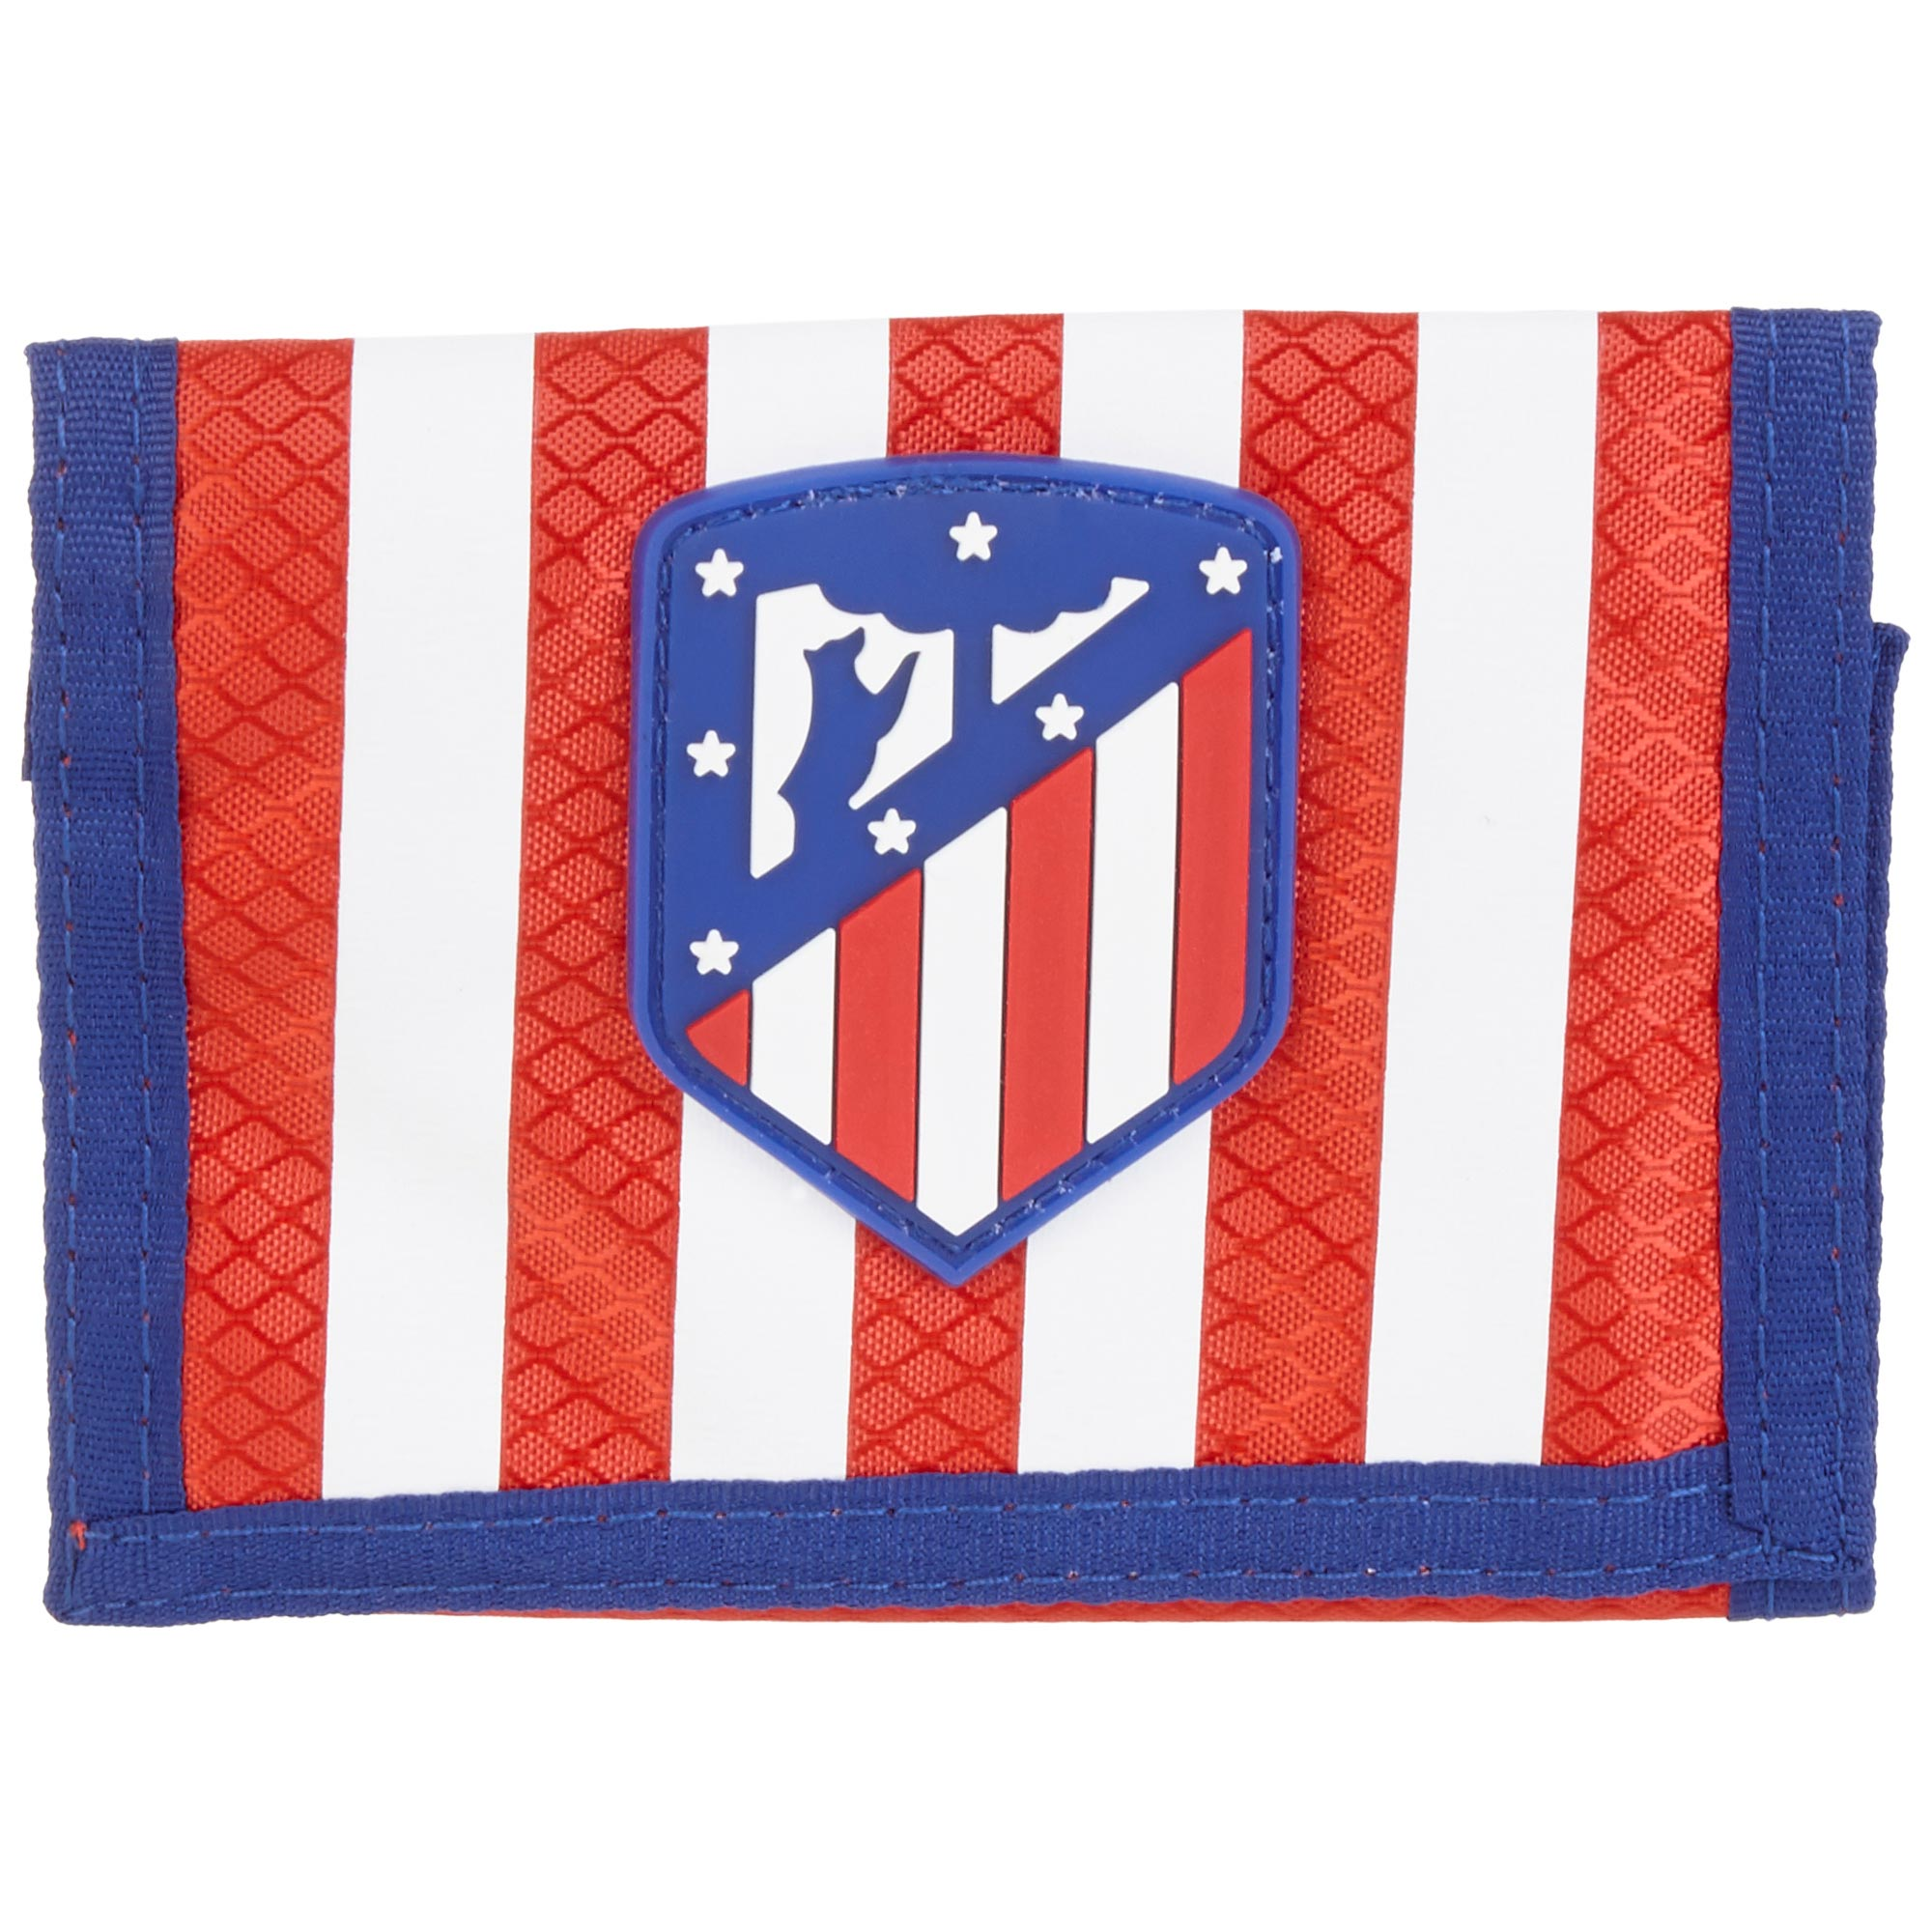 Atlético de Madrid Crest Wallet - 125 x 95mm